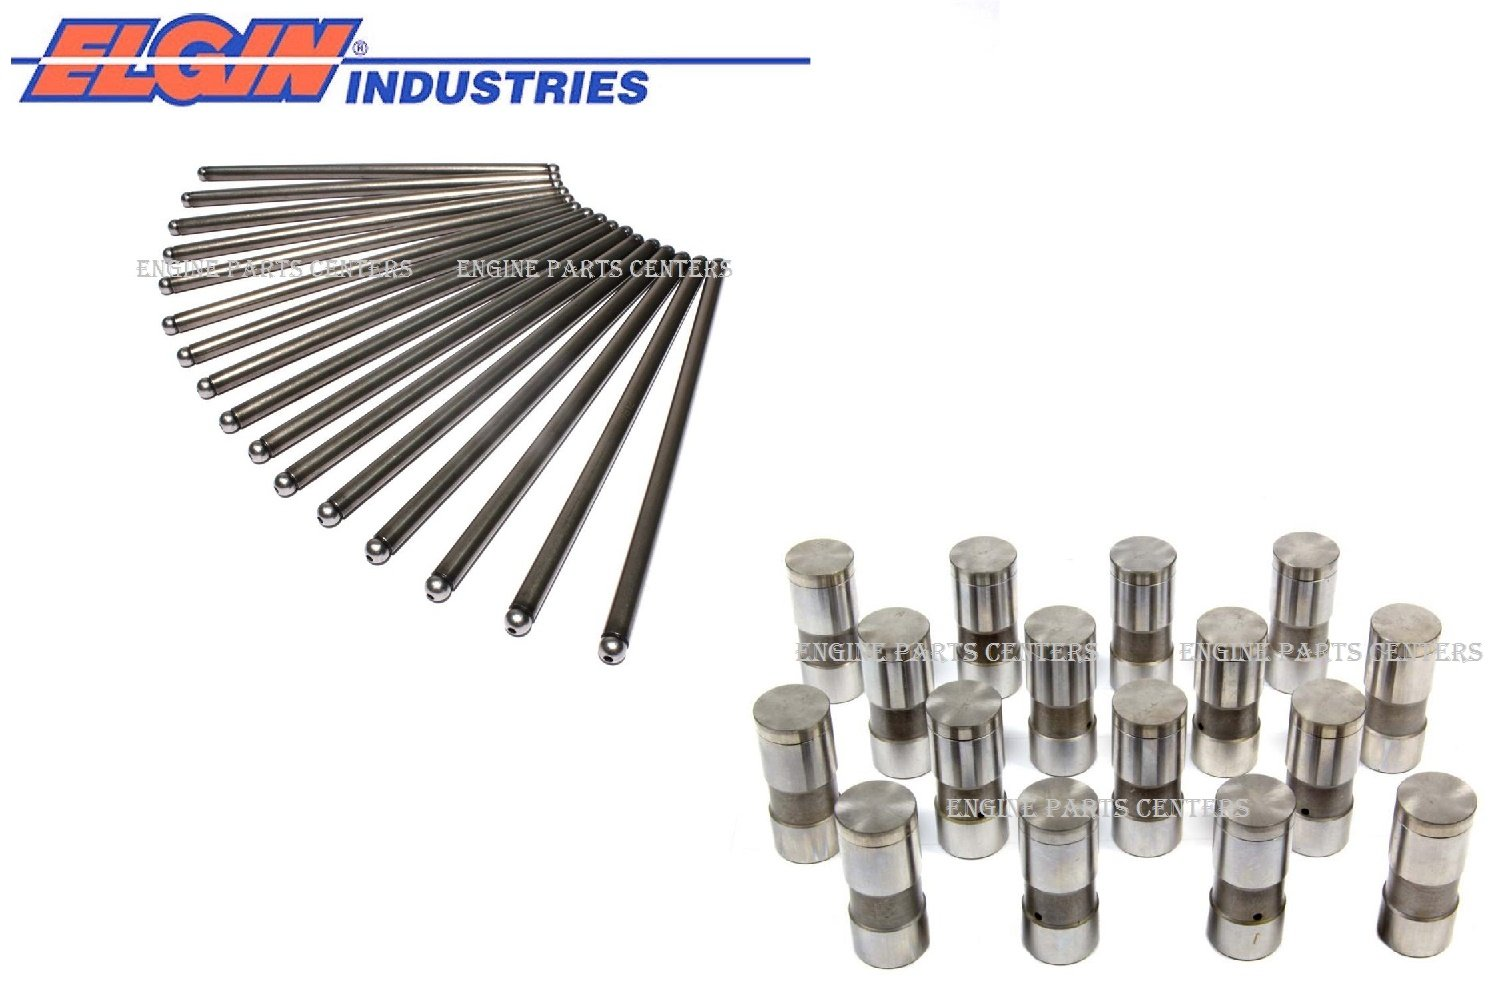 Pontiac 326 389 421 Push Rods Pushrods Set of (16) + Lifters 1961 62 63 64 65 66 67 (16 each) Elgin Industries